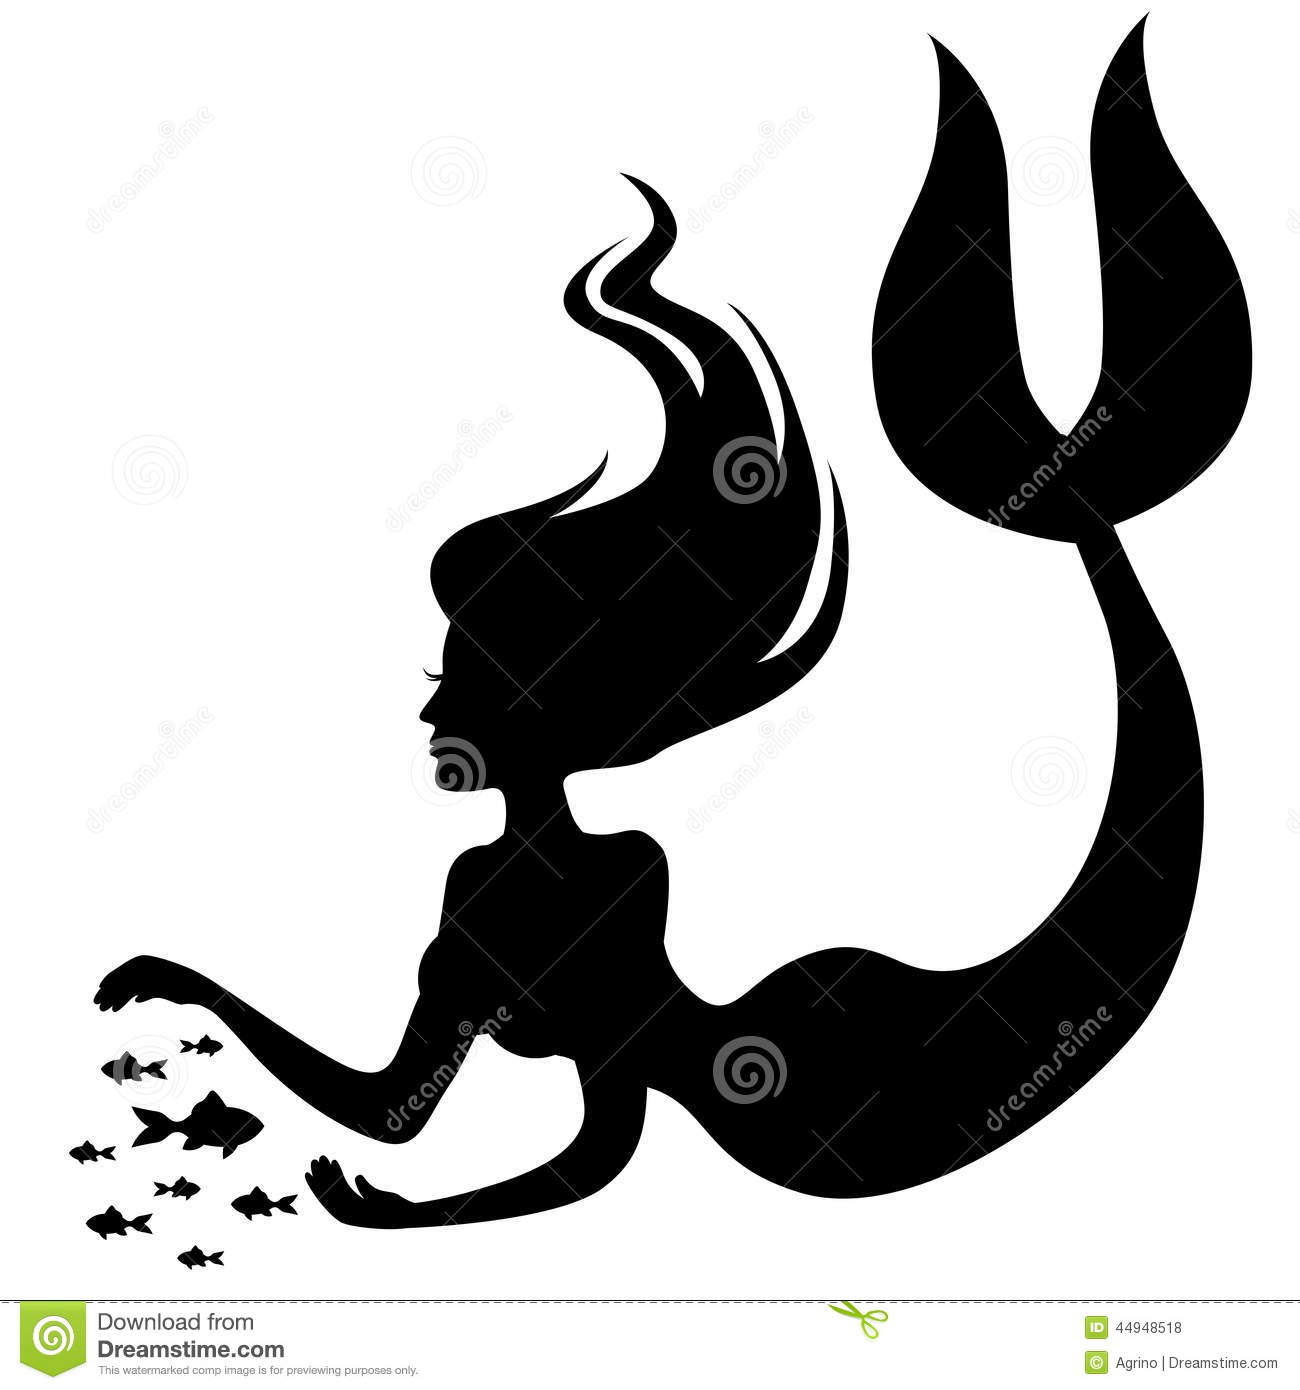 Gallery For gt Mermaid Silhouette Clip Art